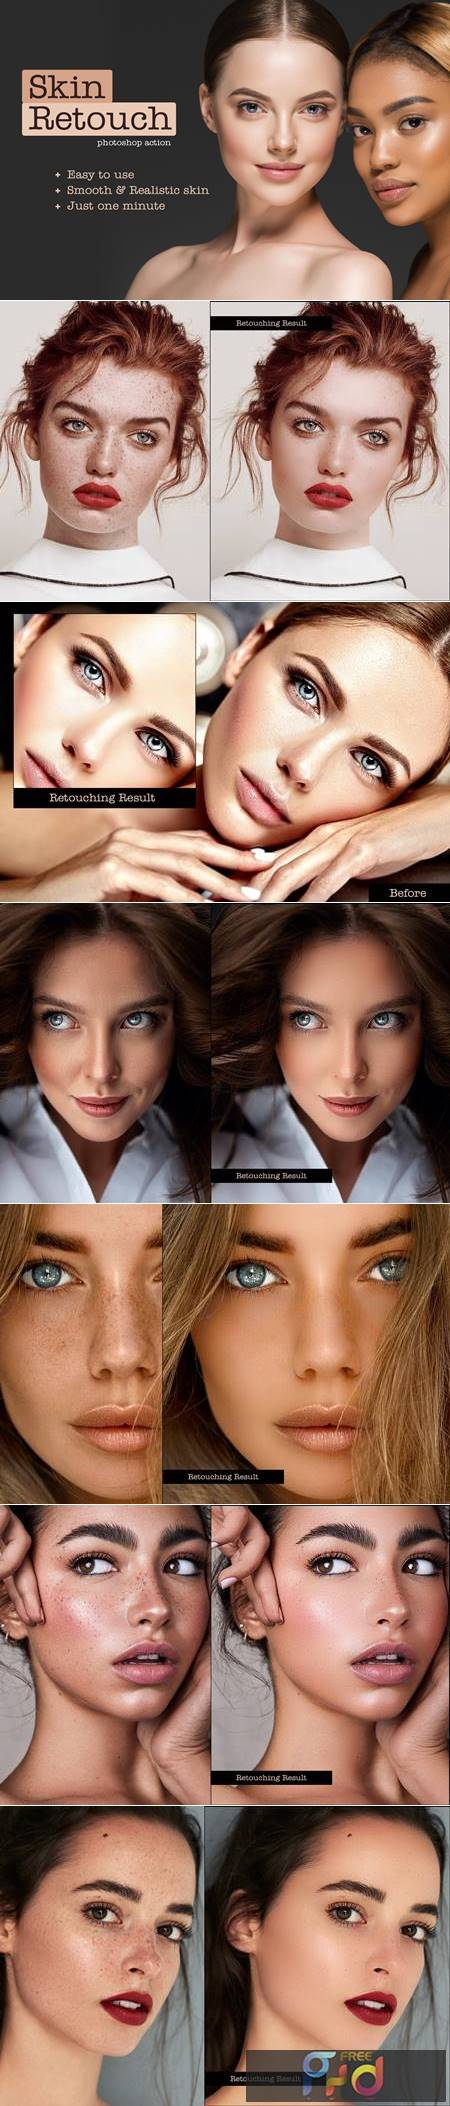 Beauty Skin Retouch PS Action 4745601 1